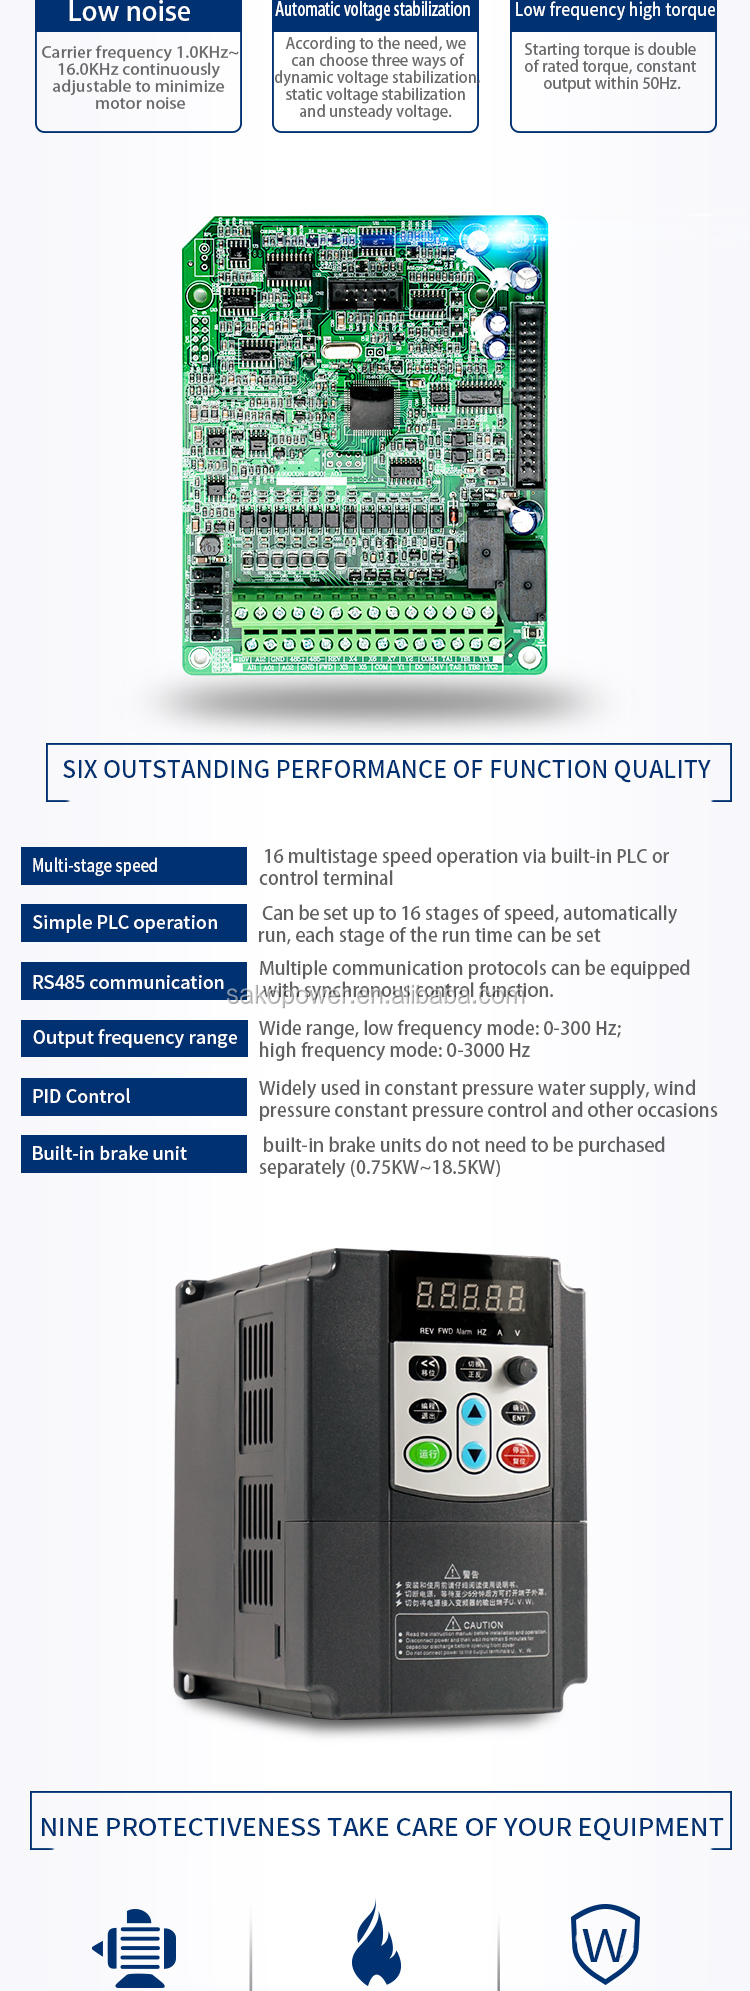 Sako VFD 30kw Vector Frequency Inverter of 230V or 380V Triple (3) Phase